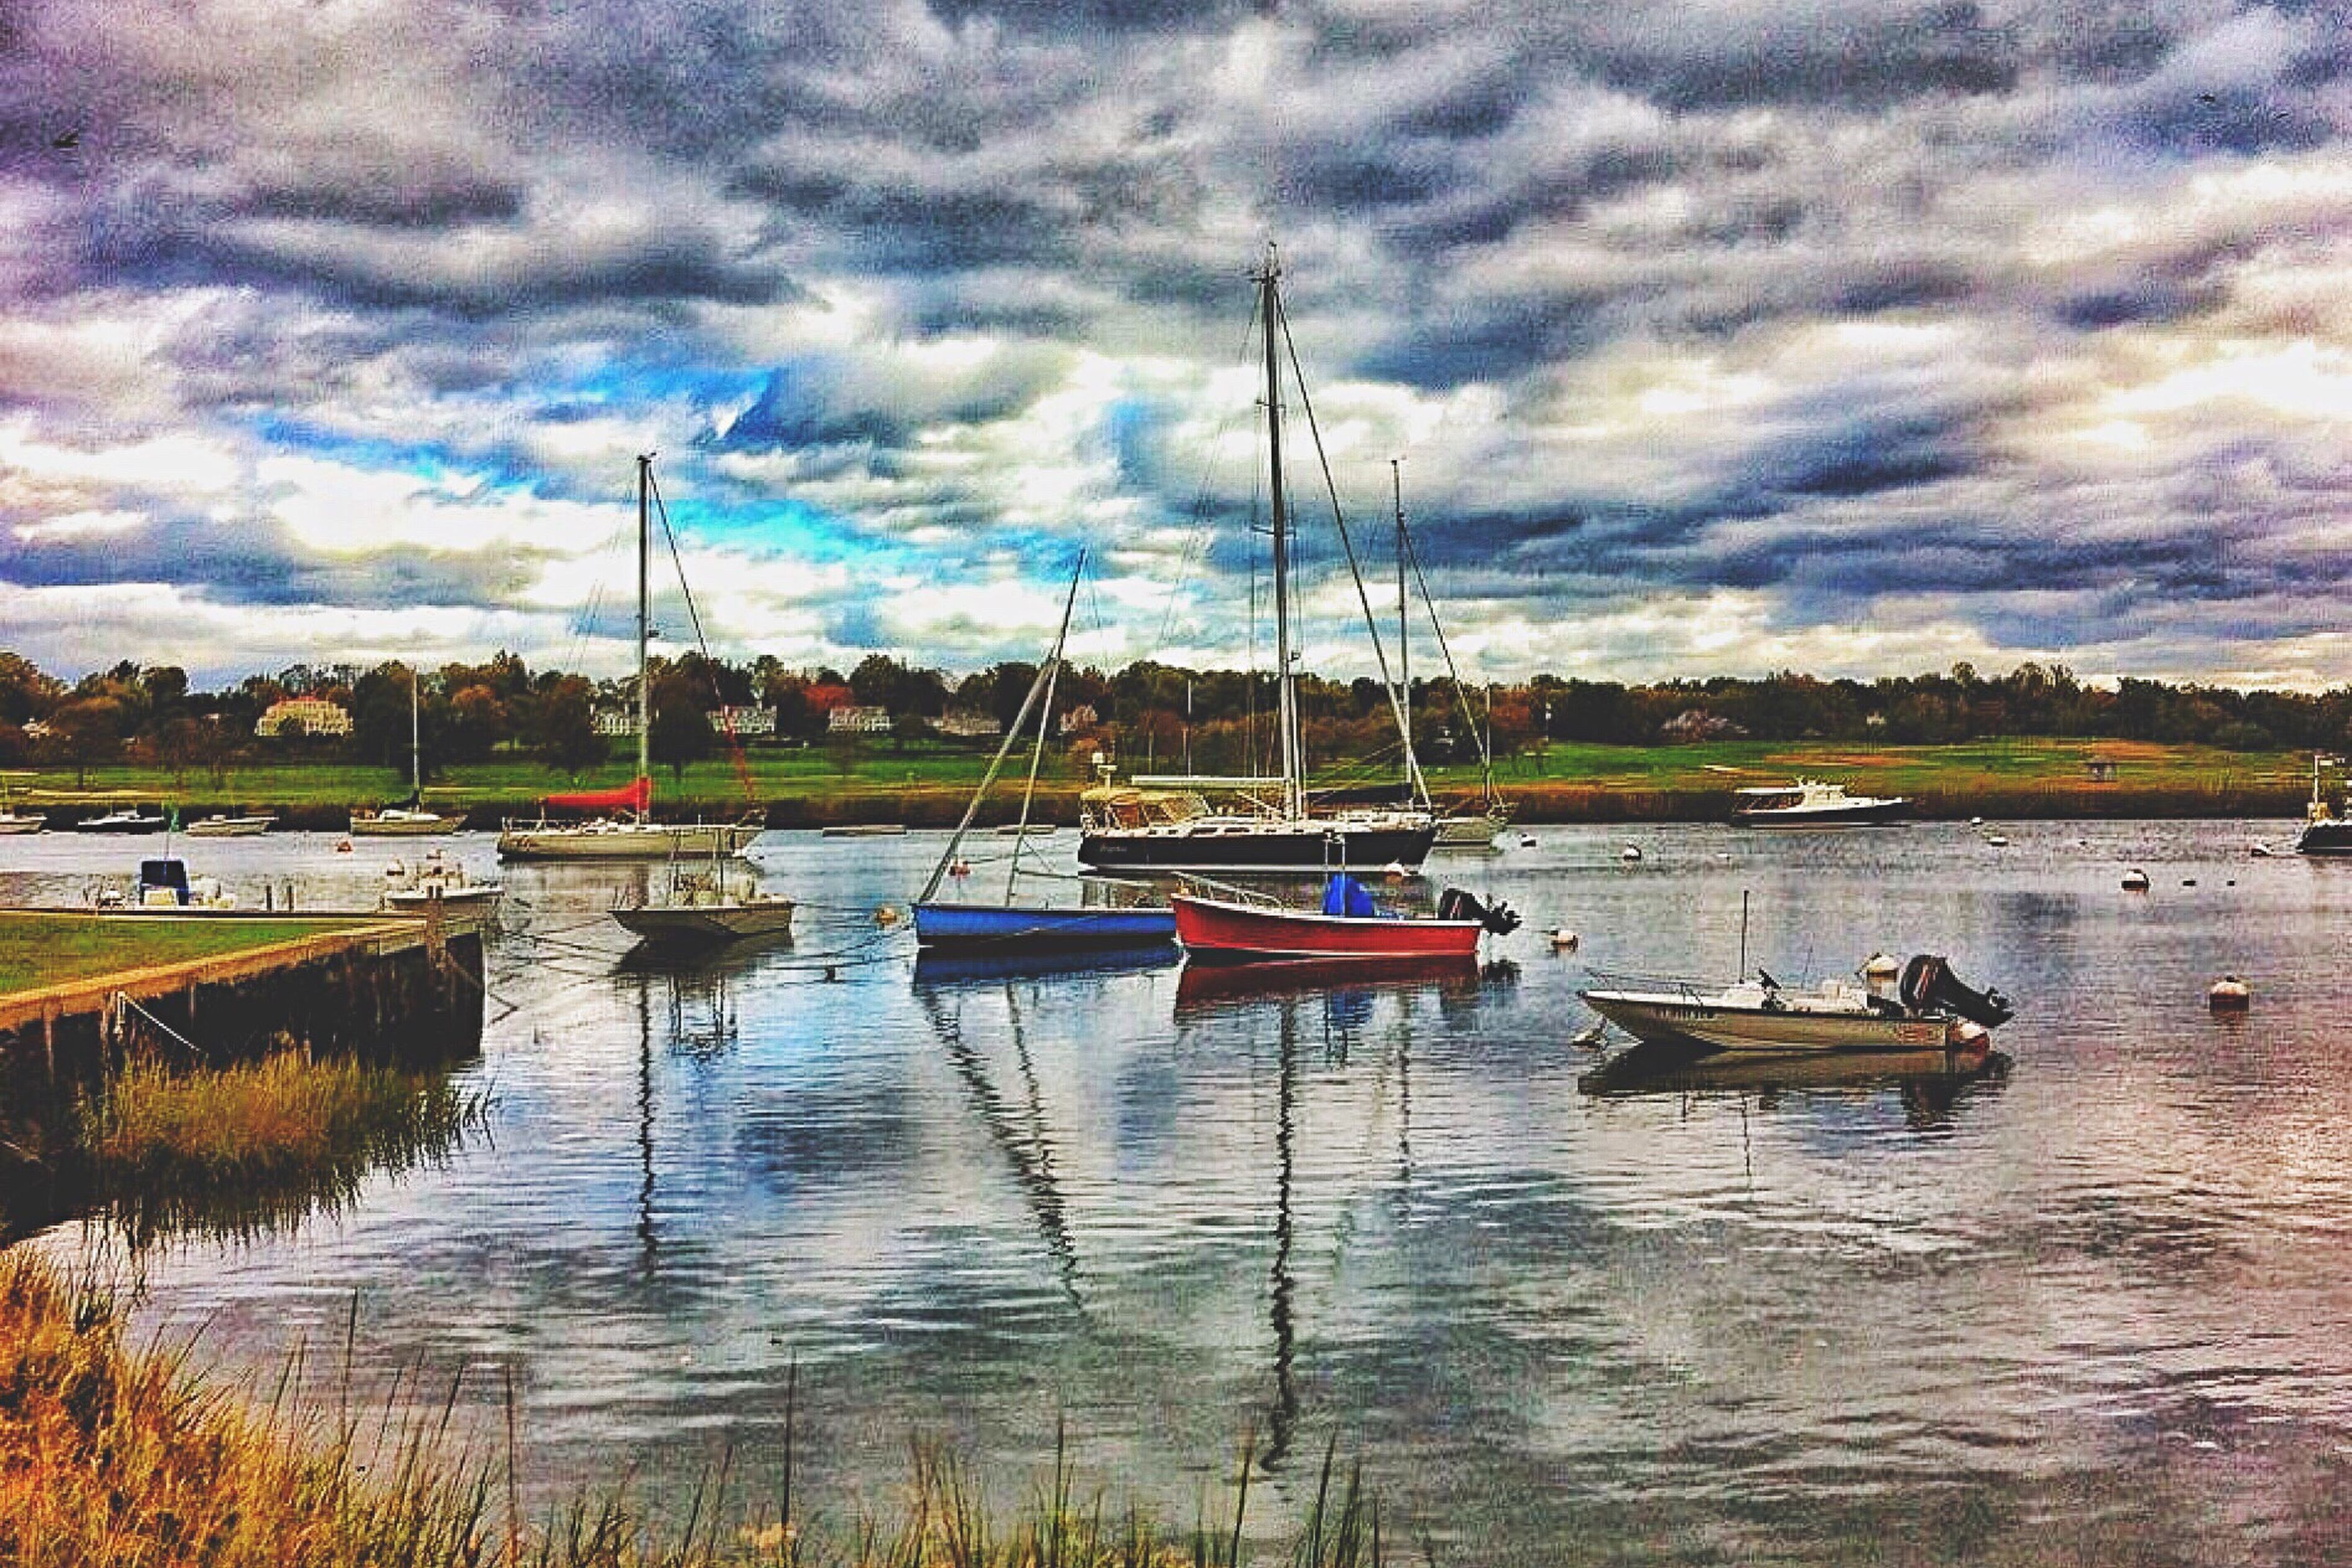 nautical vessel, transportation, water, boat, mode of transport, sky, cloud - sky, cloud, lake, sailboat, mast, cloudy, tranquility, tranquil scene, waterfront, calm, sea, scenics, day, nature, outdoors, dramatic sky, no people, beauty in nature, harbor, tourism, mountain, cloudscape